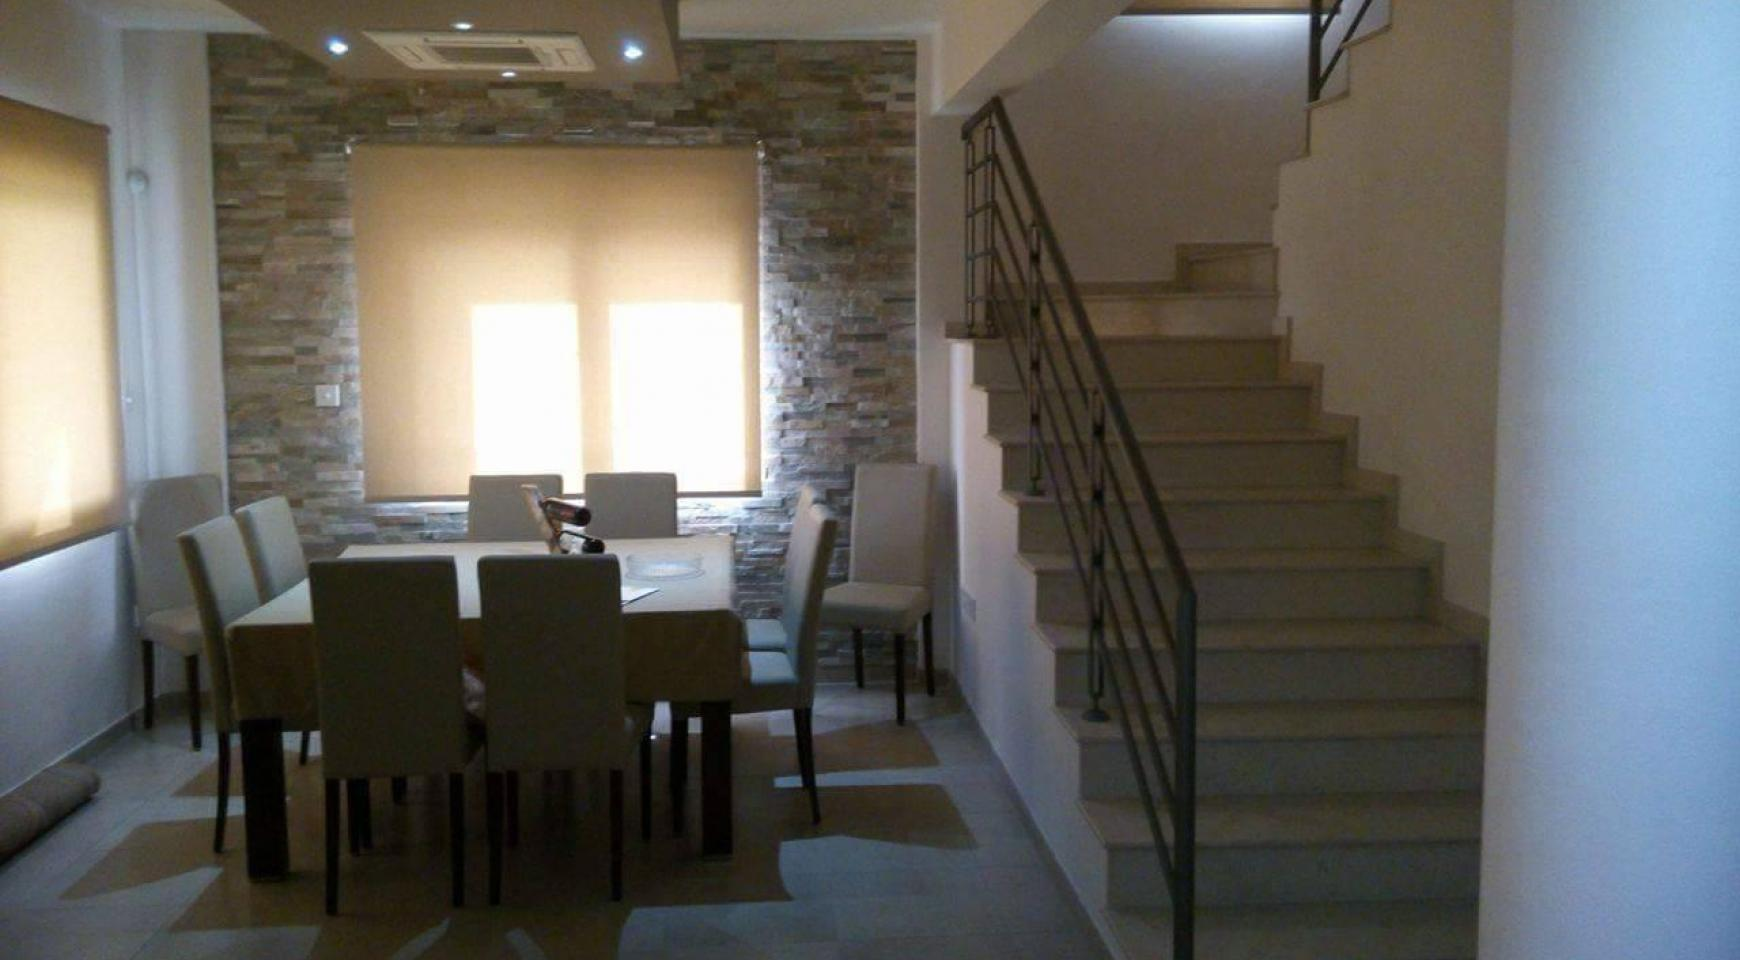 4 Bedroom House in Agios Athanasios Area - 17